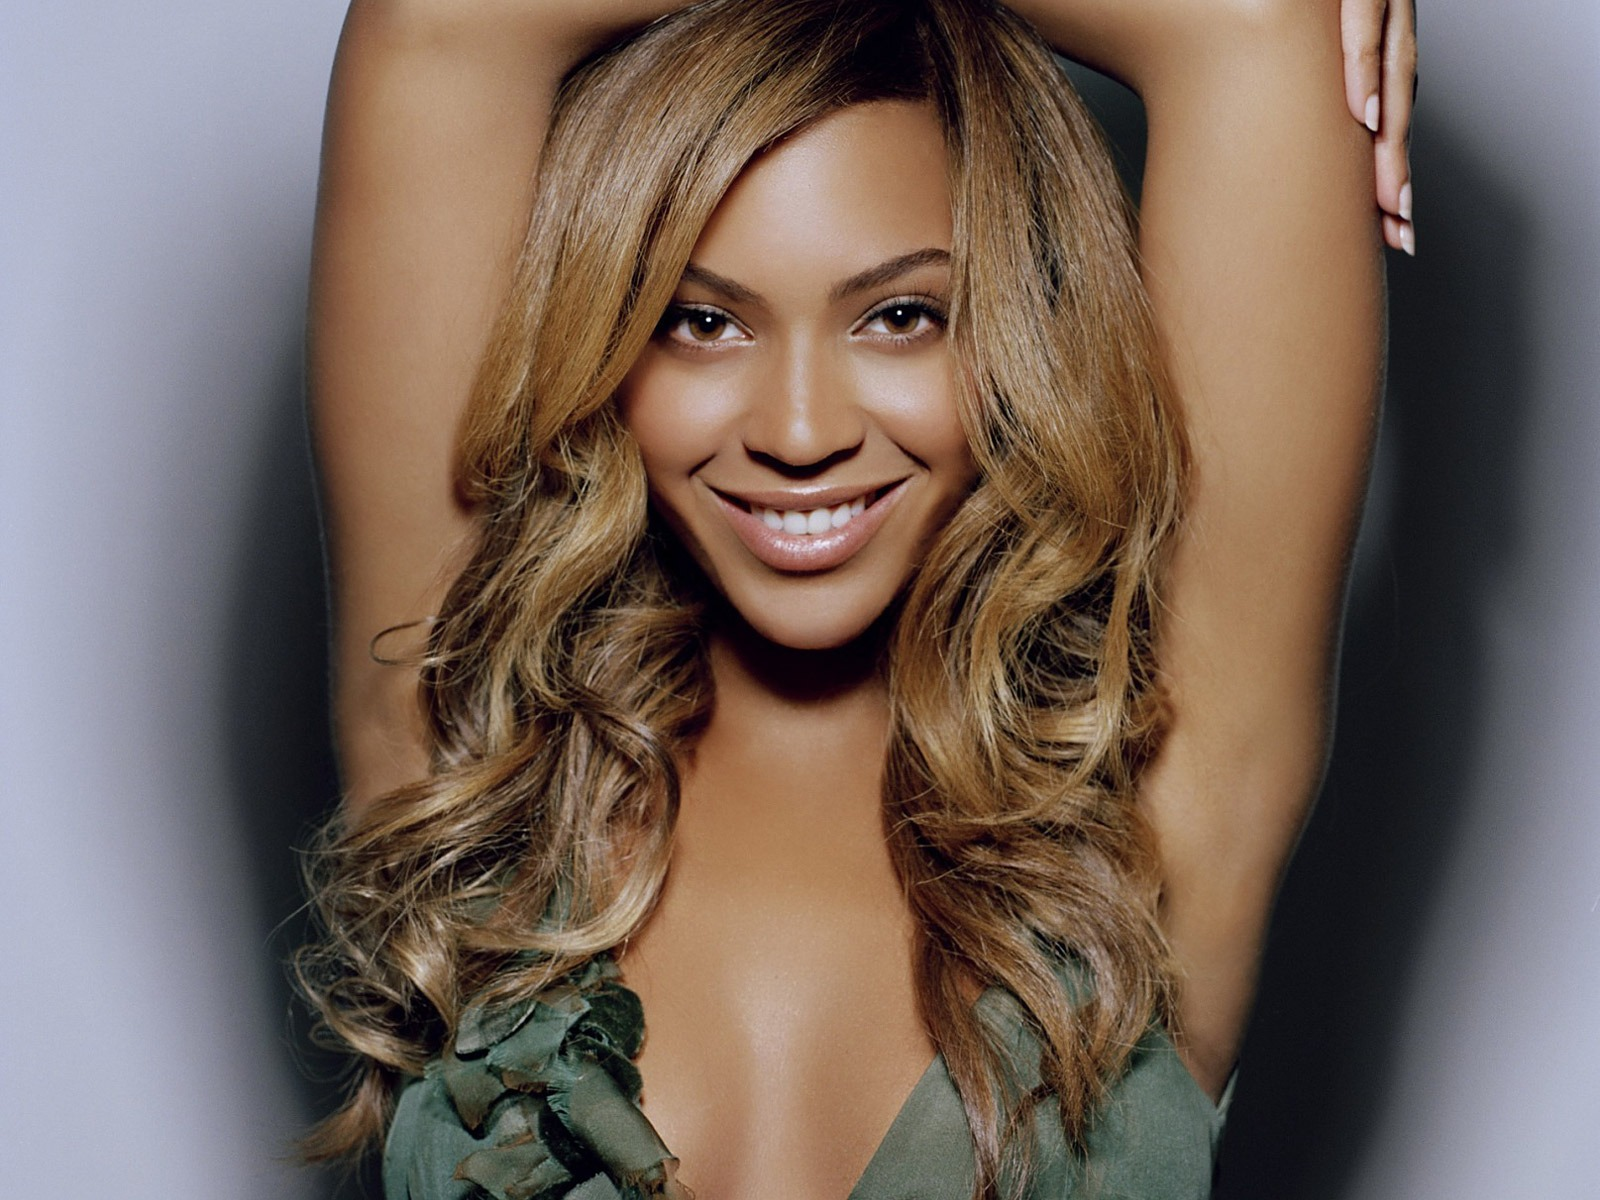 Actors Wallpapers Download Free: Beyonce Wallpaper Beyonce Female Celebrities Wallpapers In